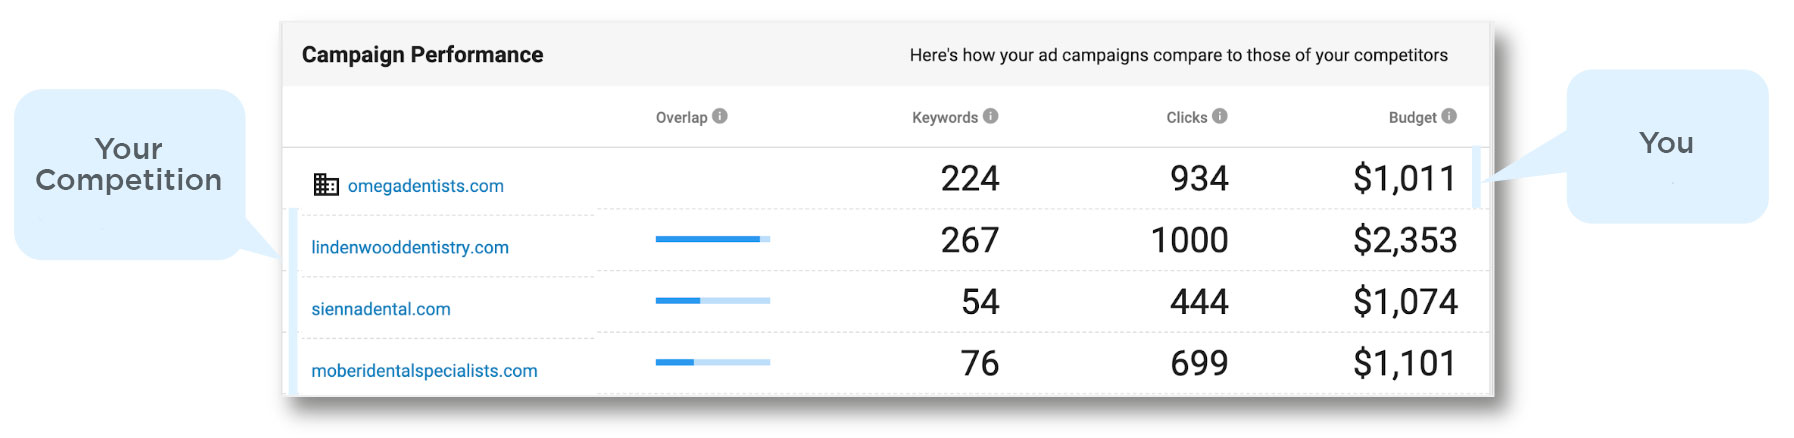 PPC Campaign Performance Review